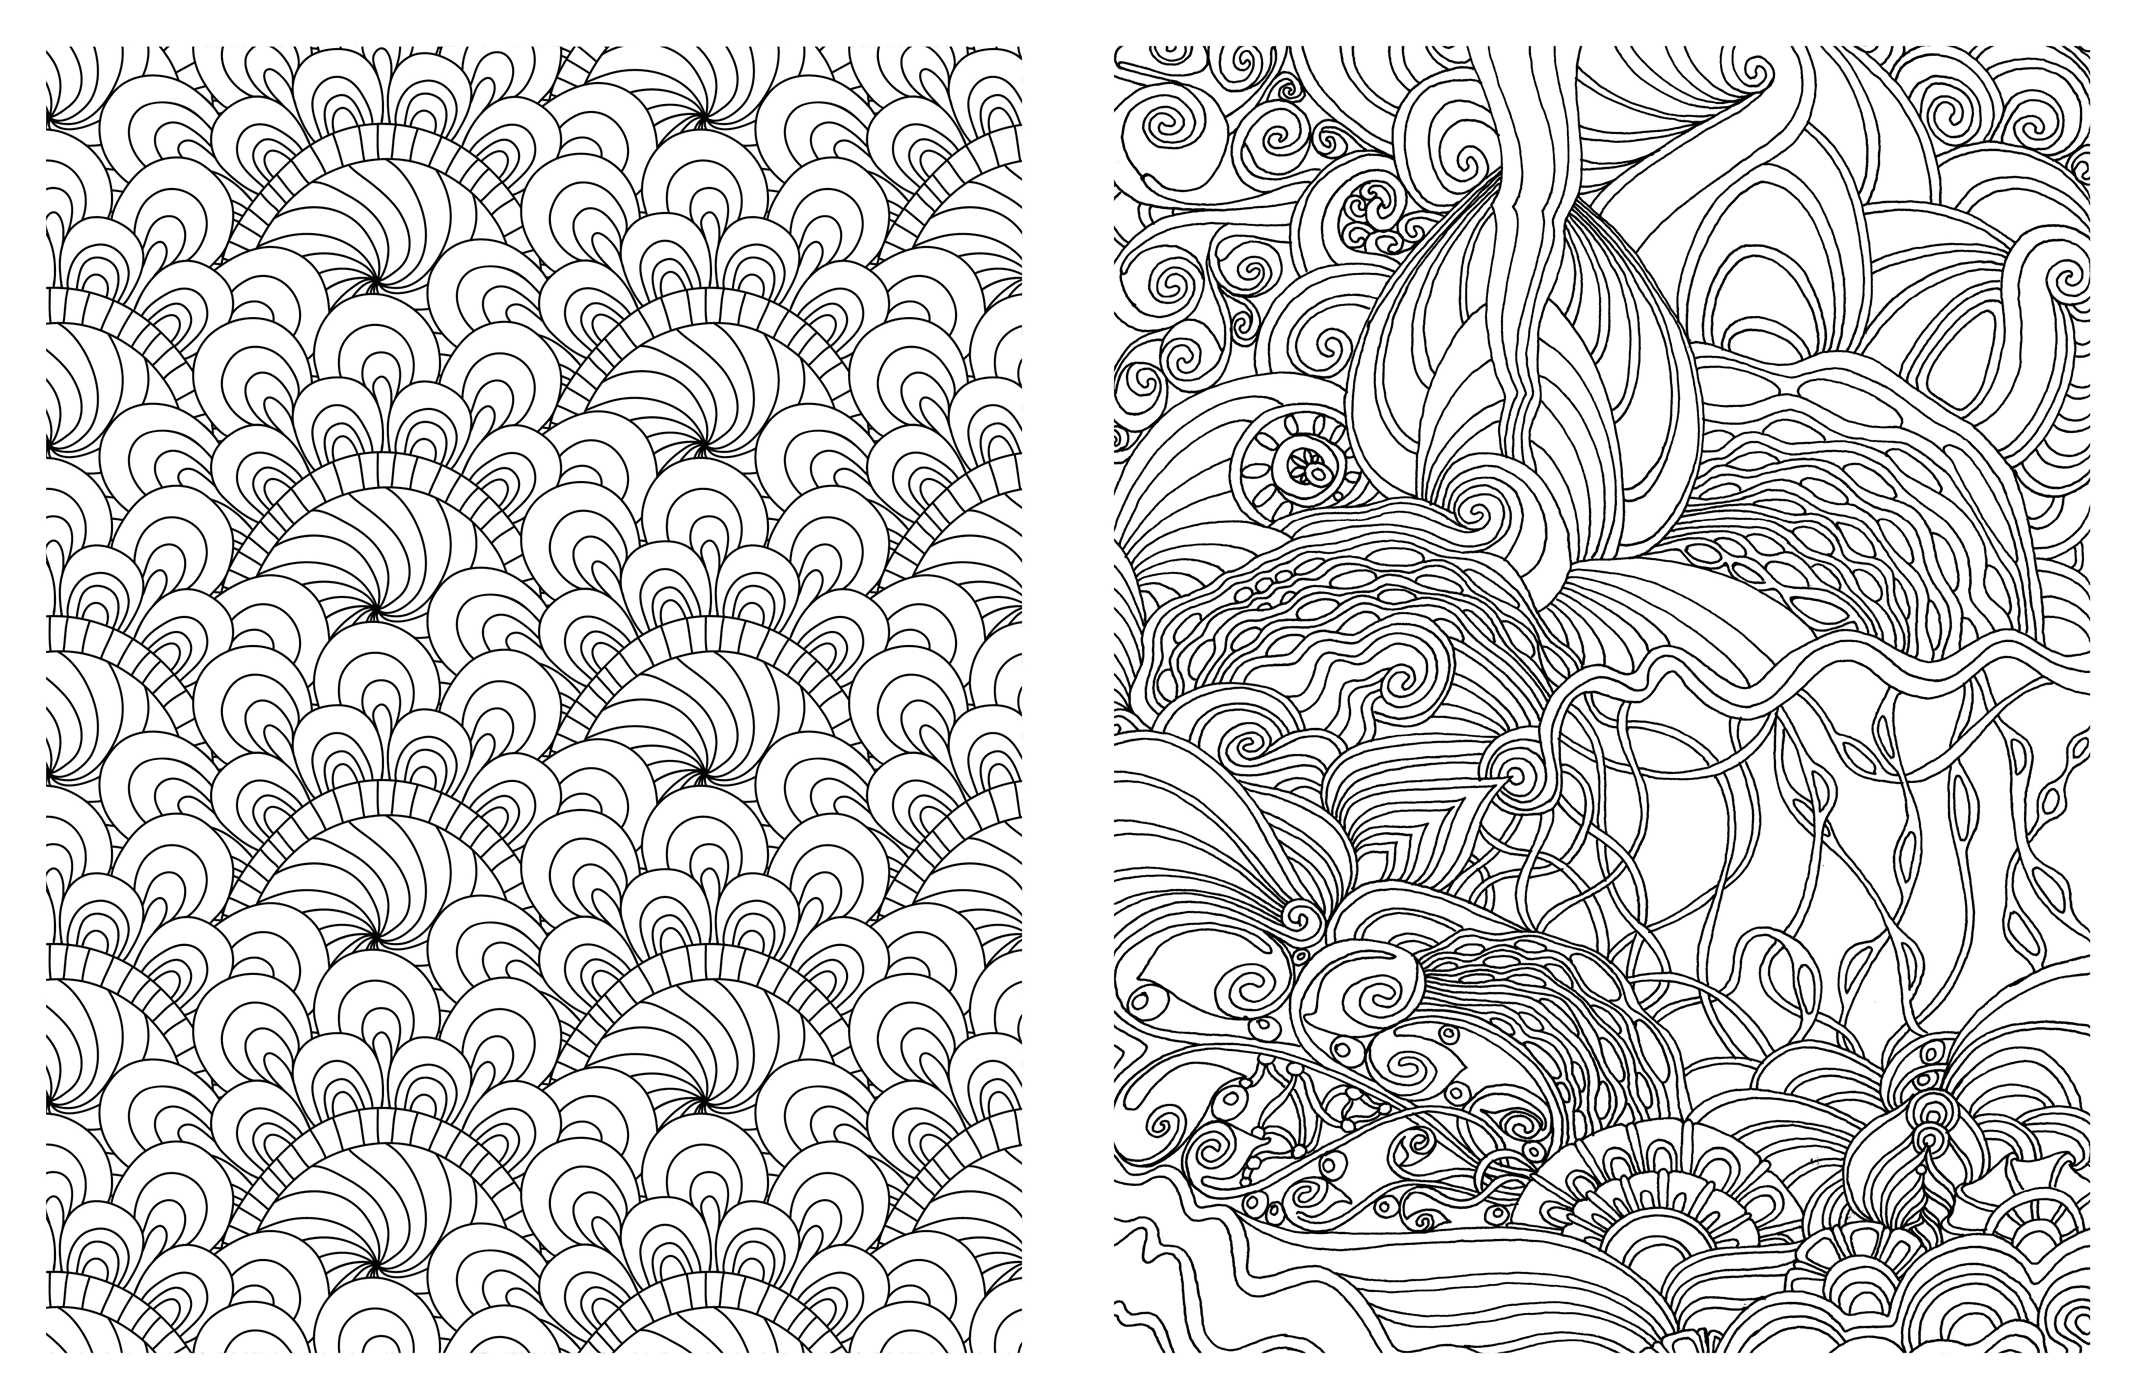 adults coloring book online : Amazon Com Posh Adult Coloring Book Soothing Designs For Fun Relaxation Posh Coloring Books 0050837348899 Andrews Mcmeel Publishing Books